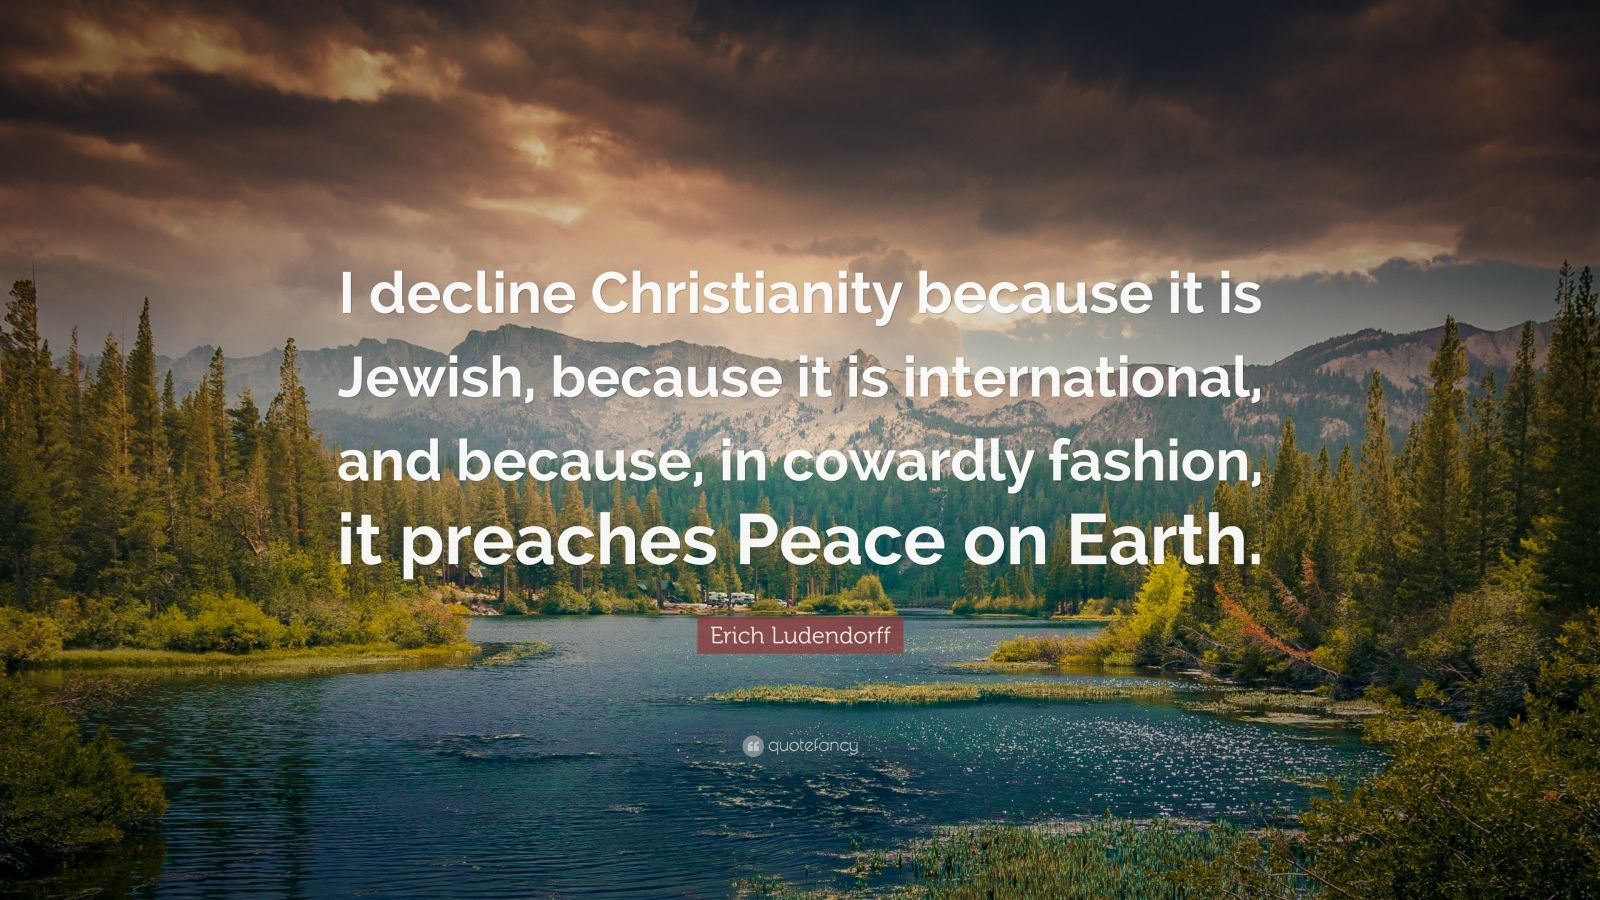 """Erich Ludendorff Quote: """"I decline Christianity because it is Jewish, because it is international, and because, in cowardly fashion, it preaches Peace on Earth."""""""